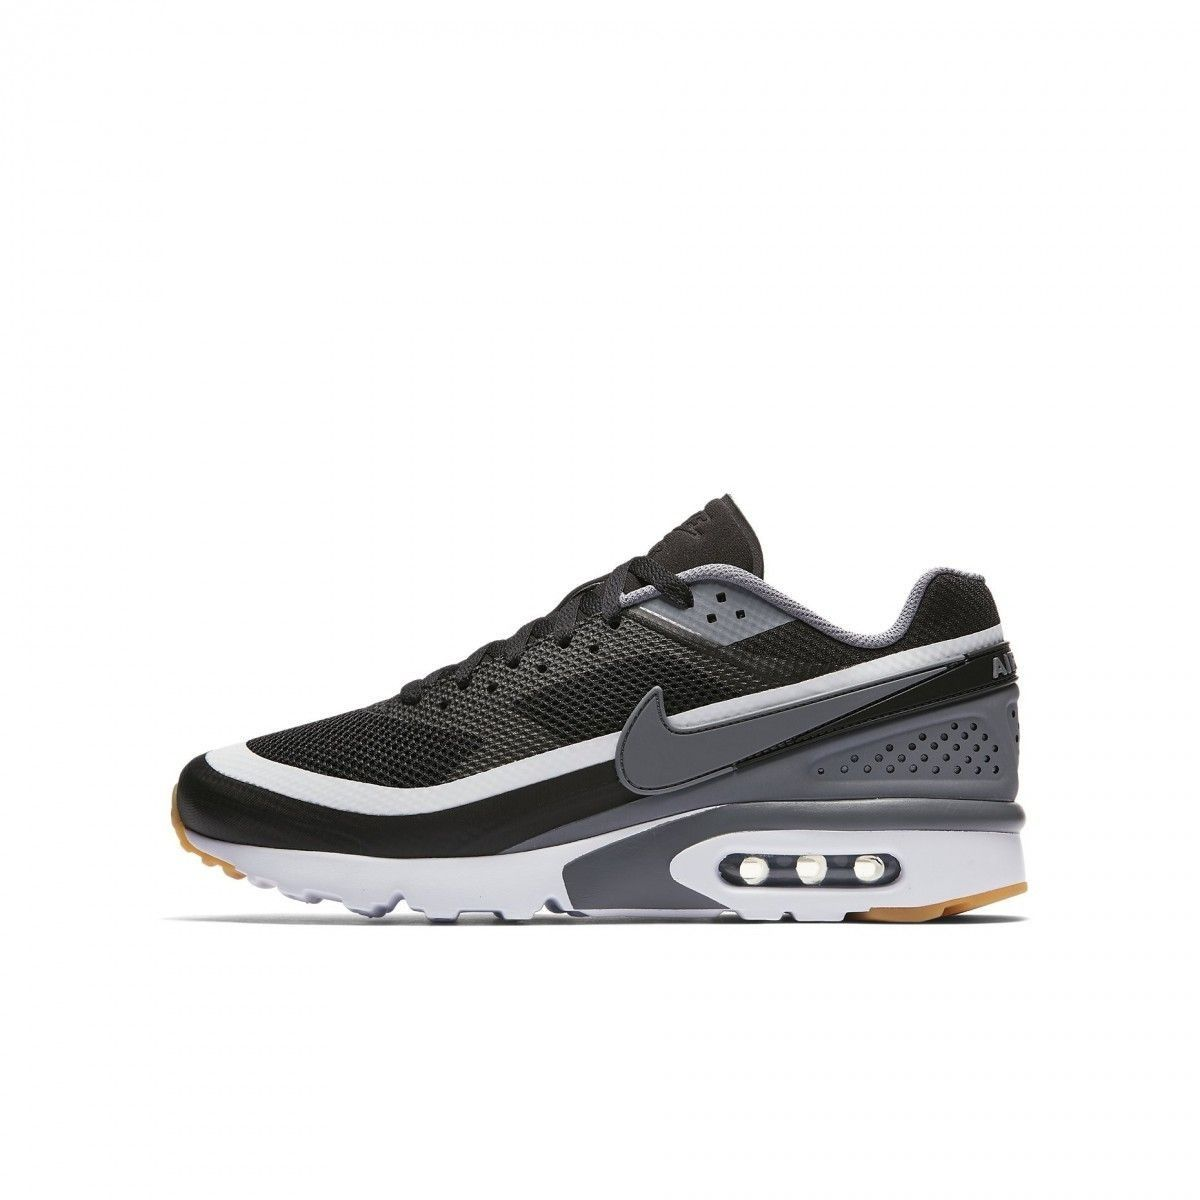 Basket Mode Air Max Bw Ultra - Taille : 40 | Nike, Nike pour homme ...